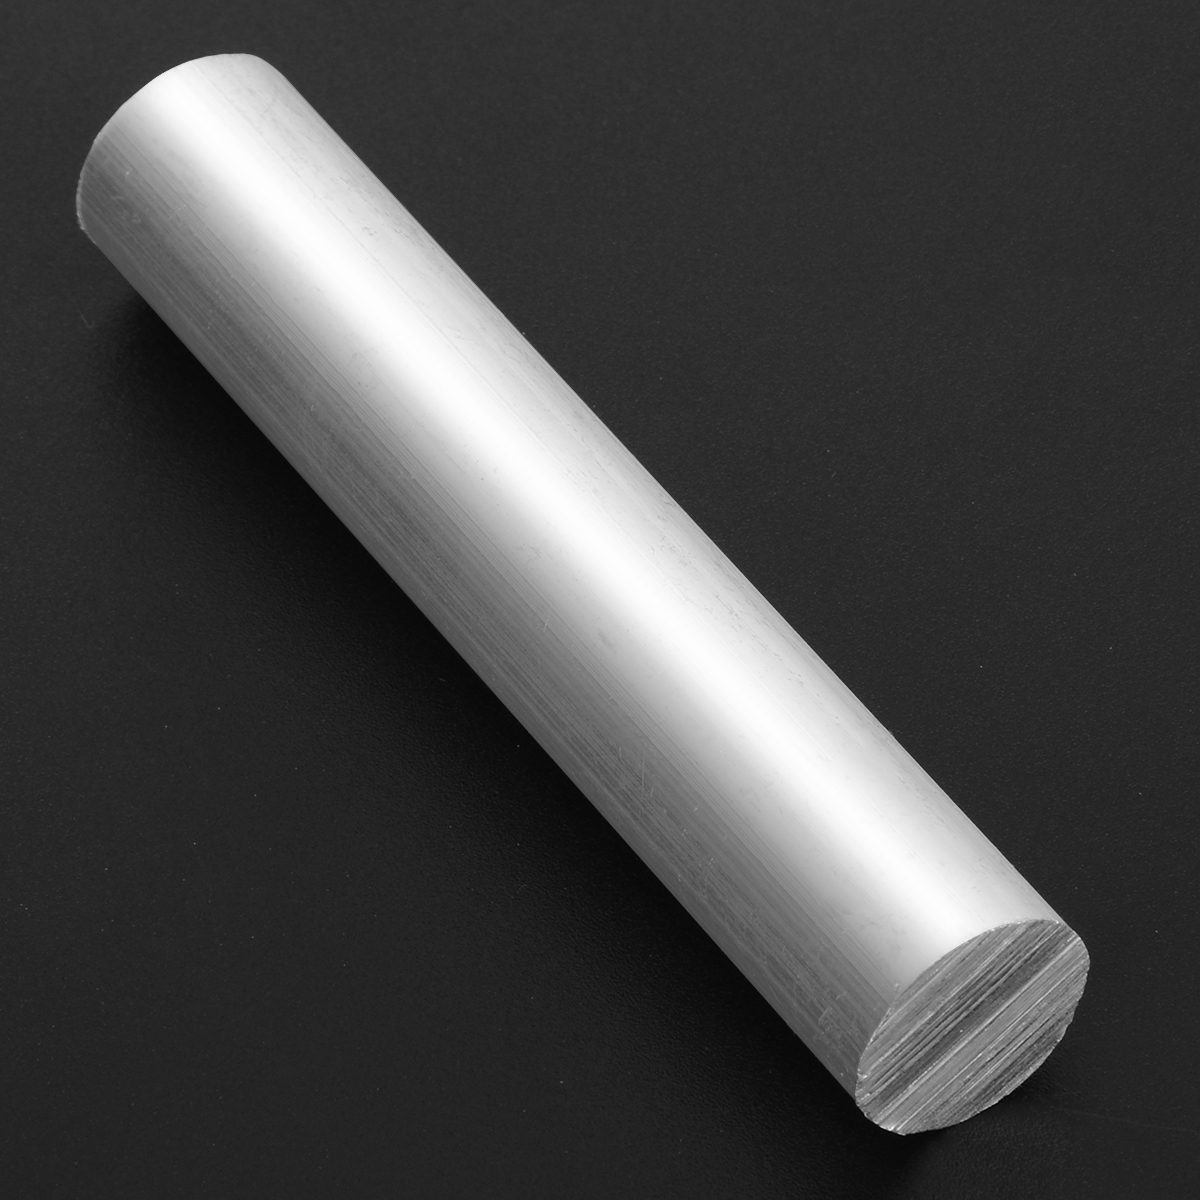 1pc 16mm X 9cm Mg Rod Bar High Purity 99.99% Magnesium Metal Mg Rod For Welding Soldering Mg Bar Survival Emergency Tools